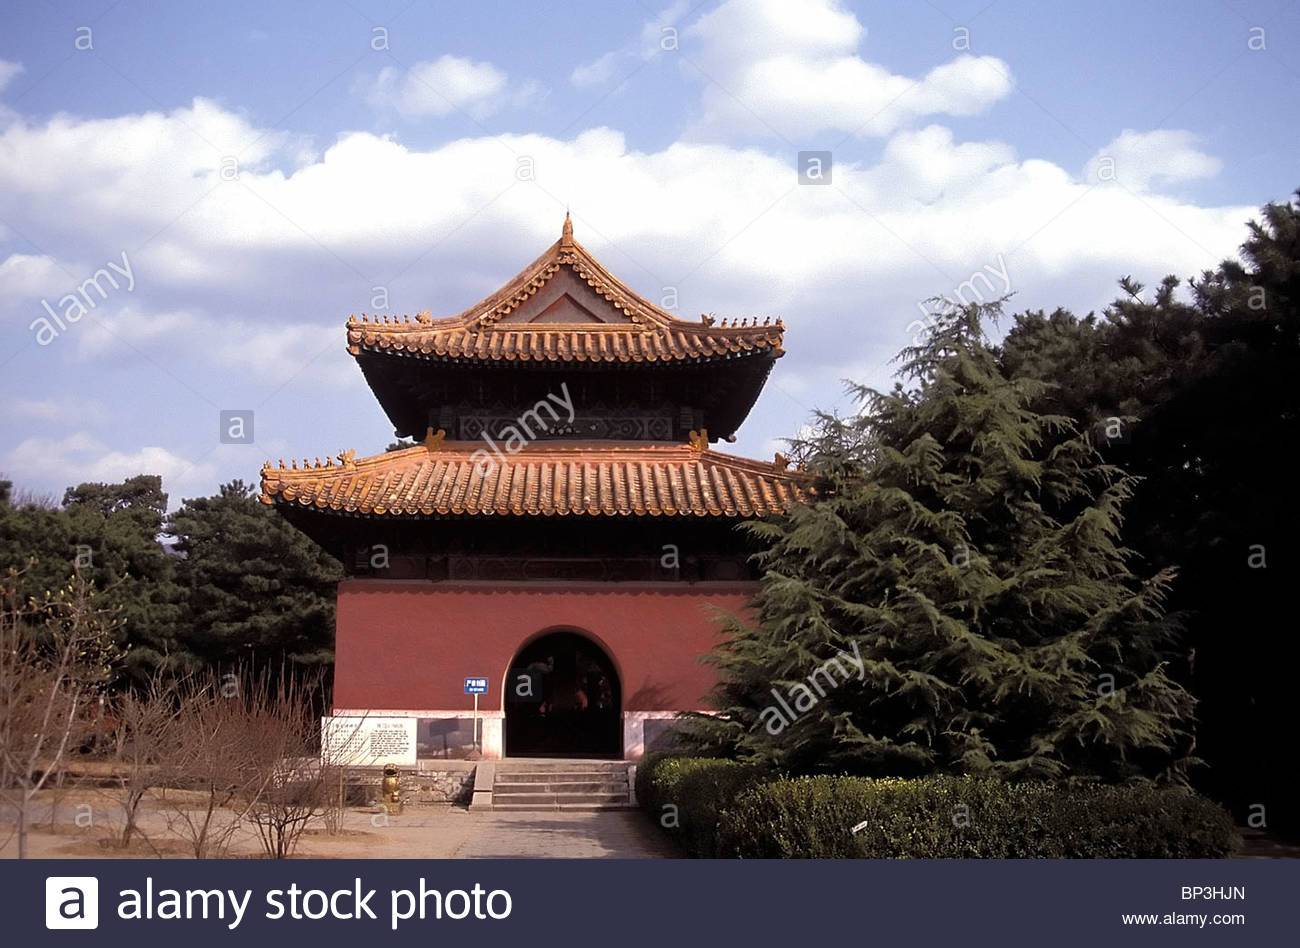 Arthur M Sackler Museum of Art & Archaeology Běijīng, Stele Pavilion at the Chang Ling (Ming Tombs), Beijing, China ...